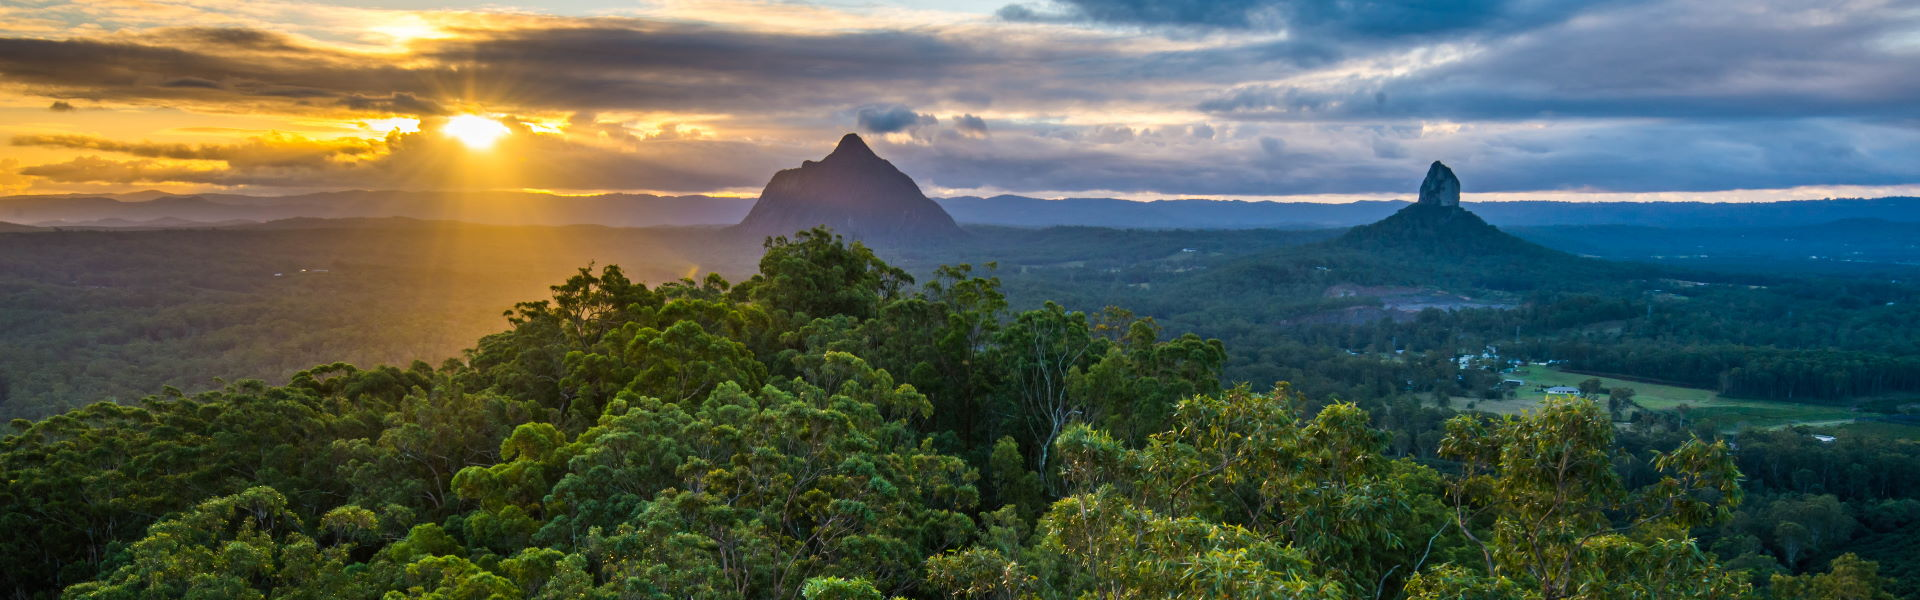 Image showing a sunset view of the Glasshouse Mountains